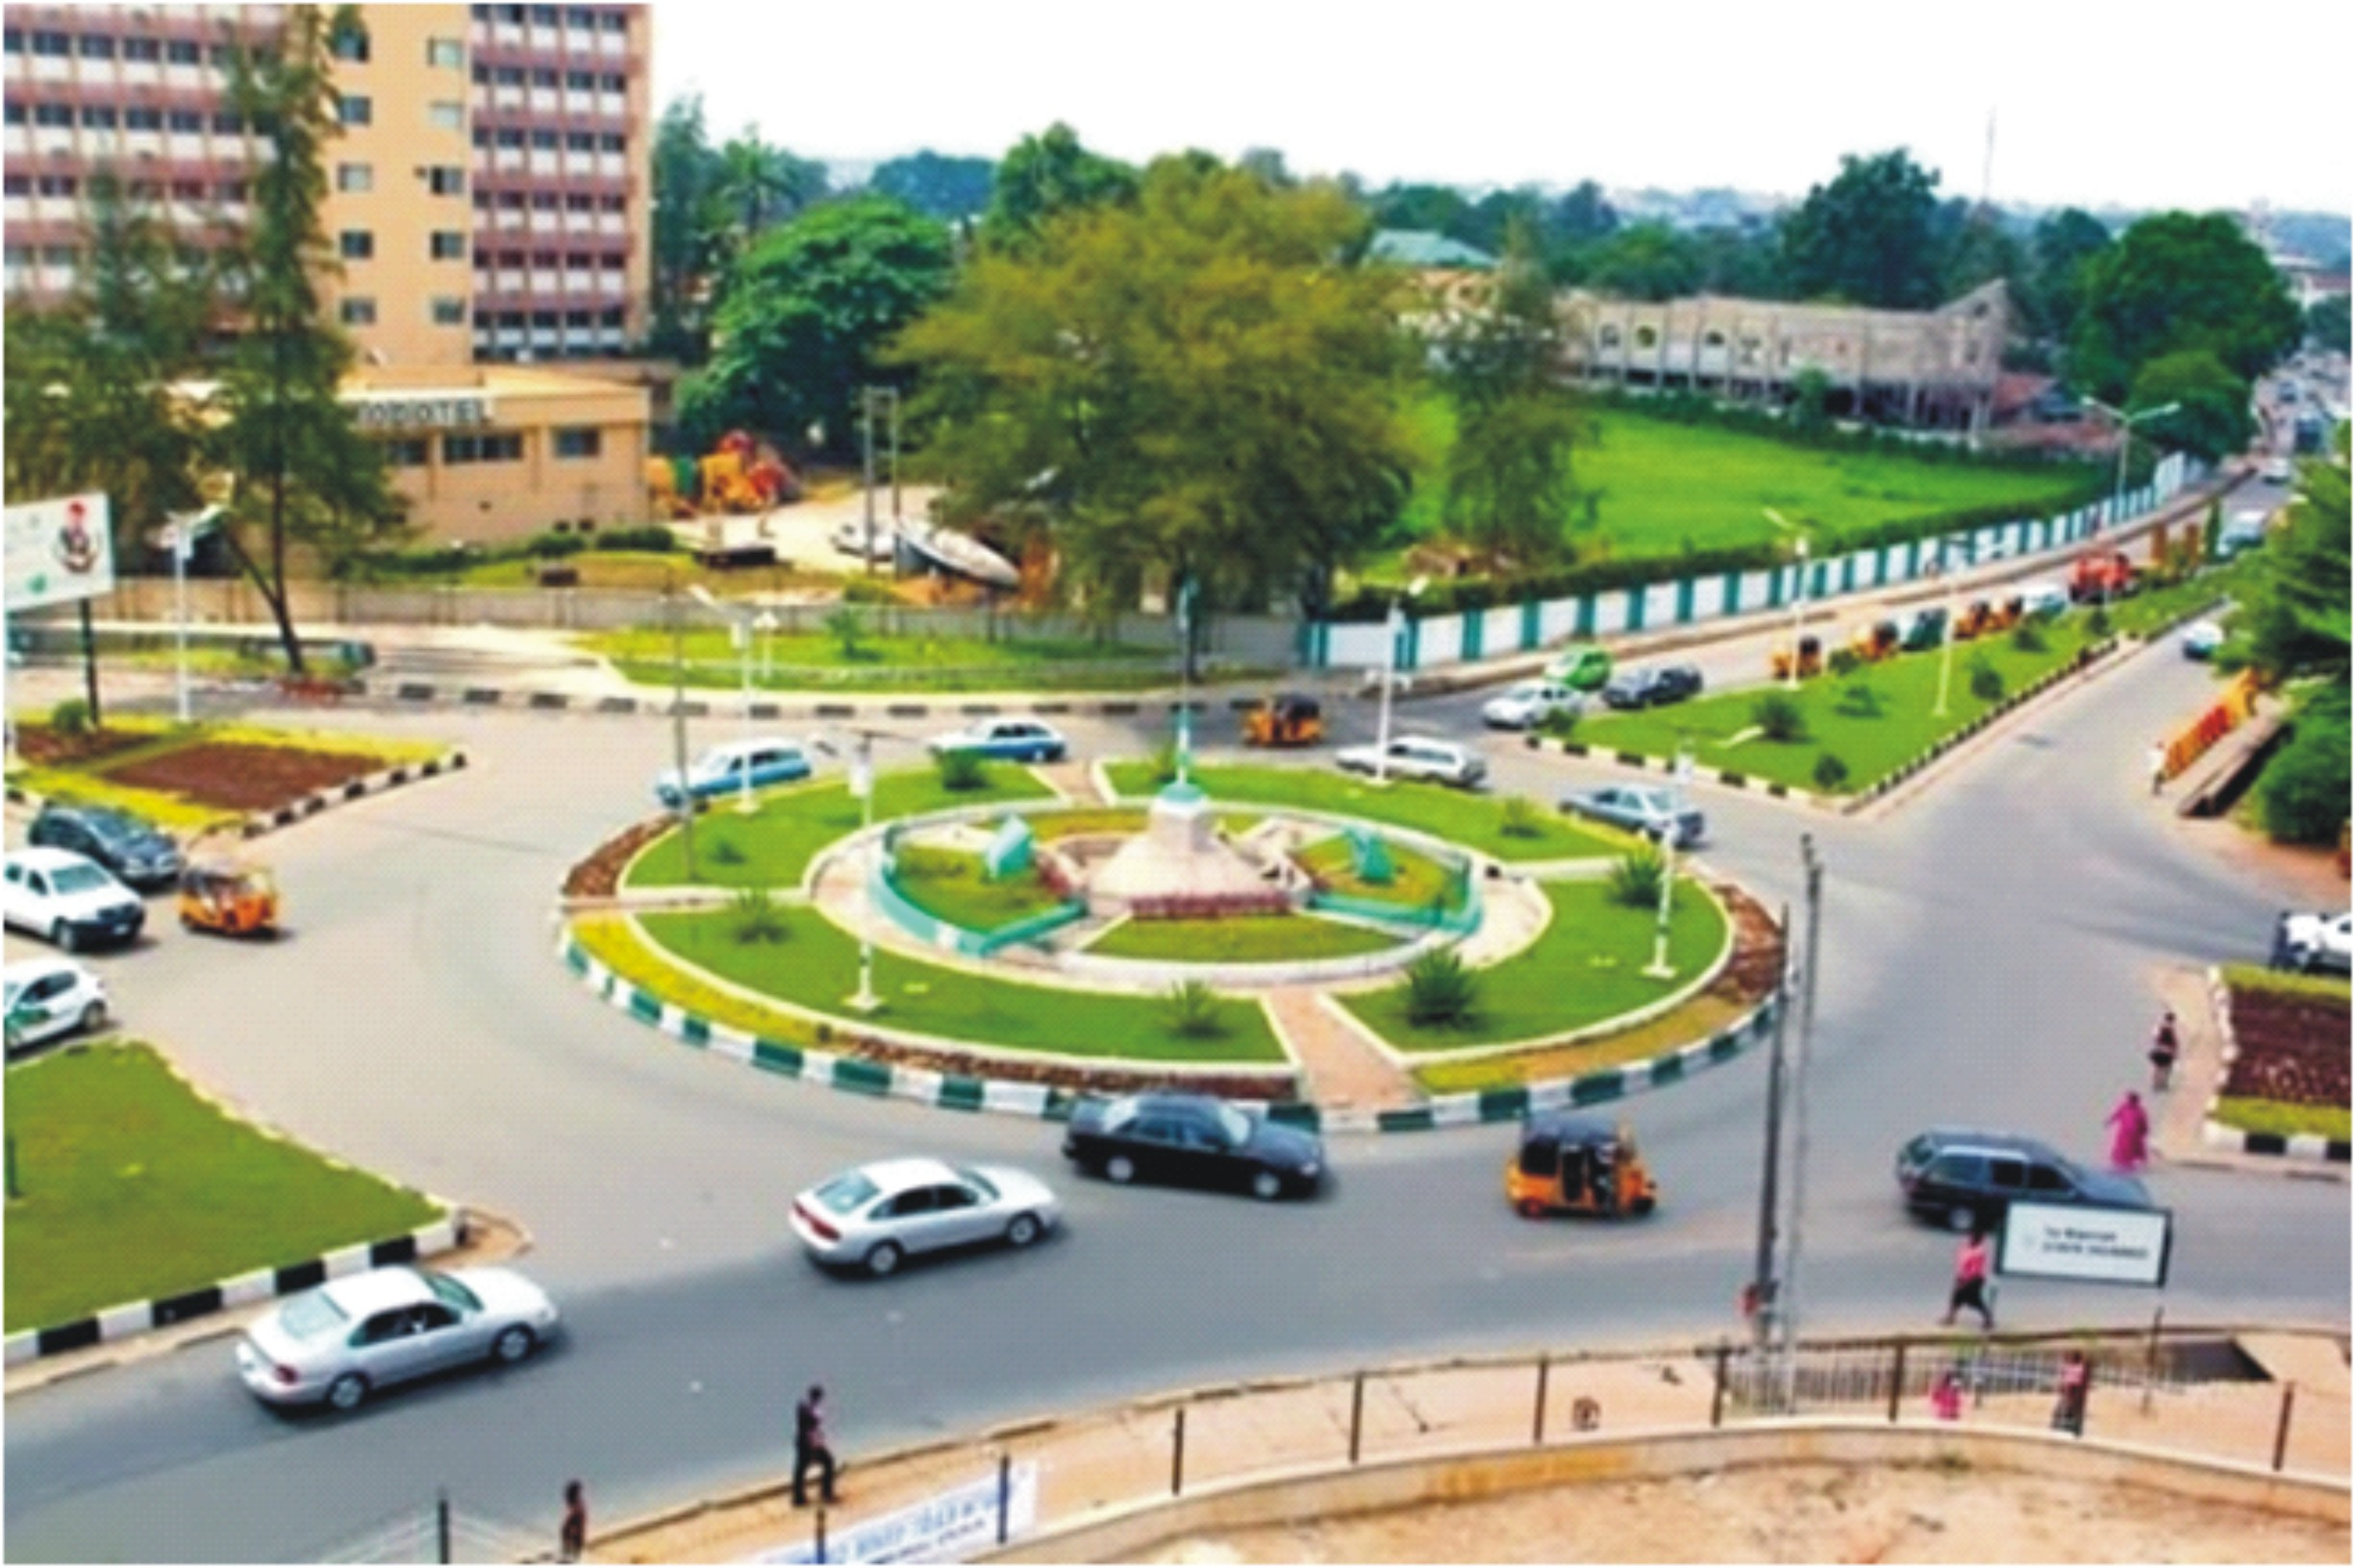 Imo state to house Afreximbank investment centre in Nigeria - Ventures Africa